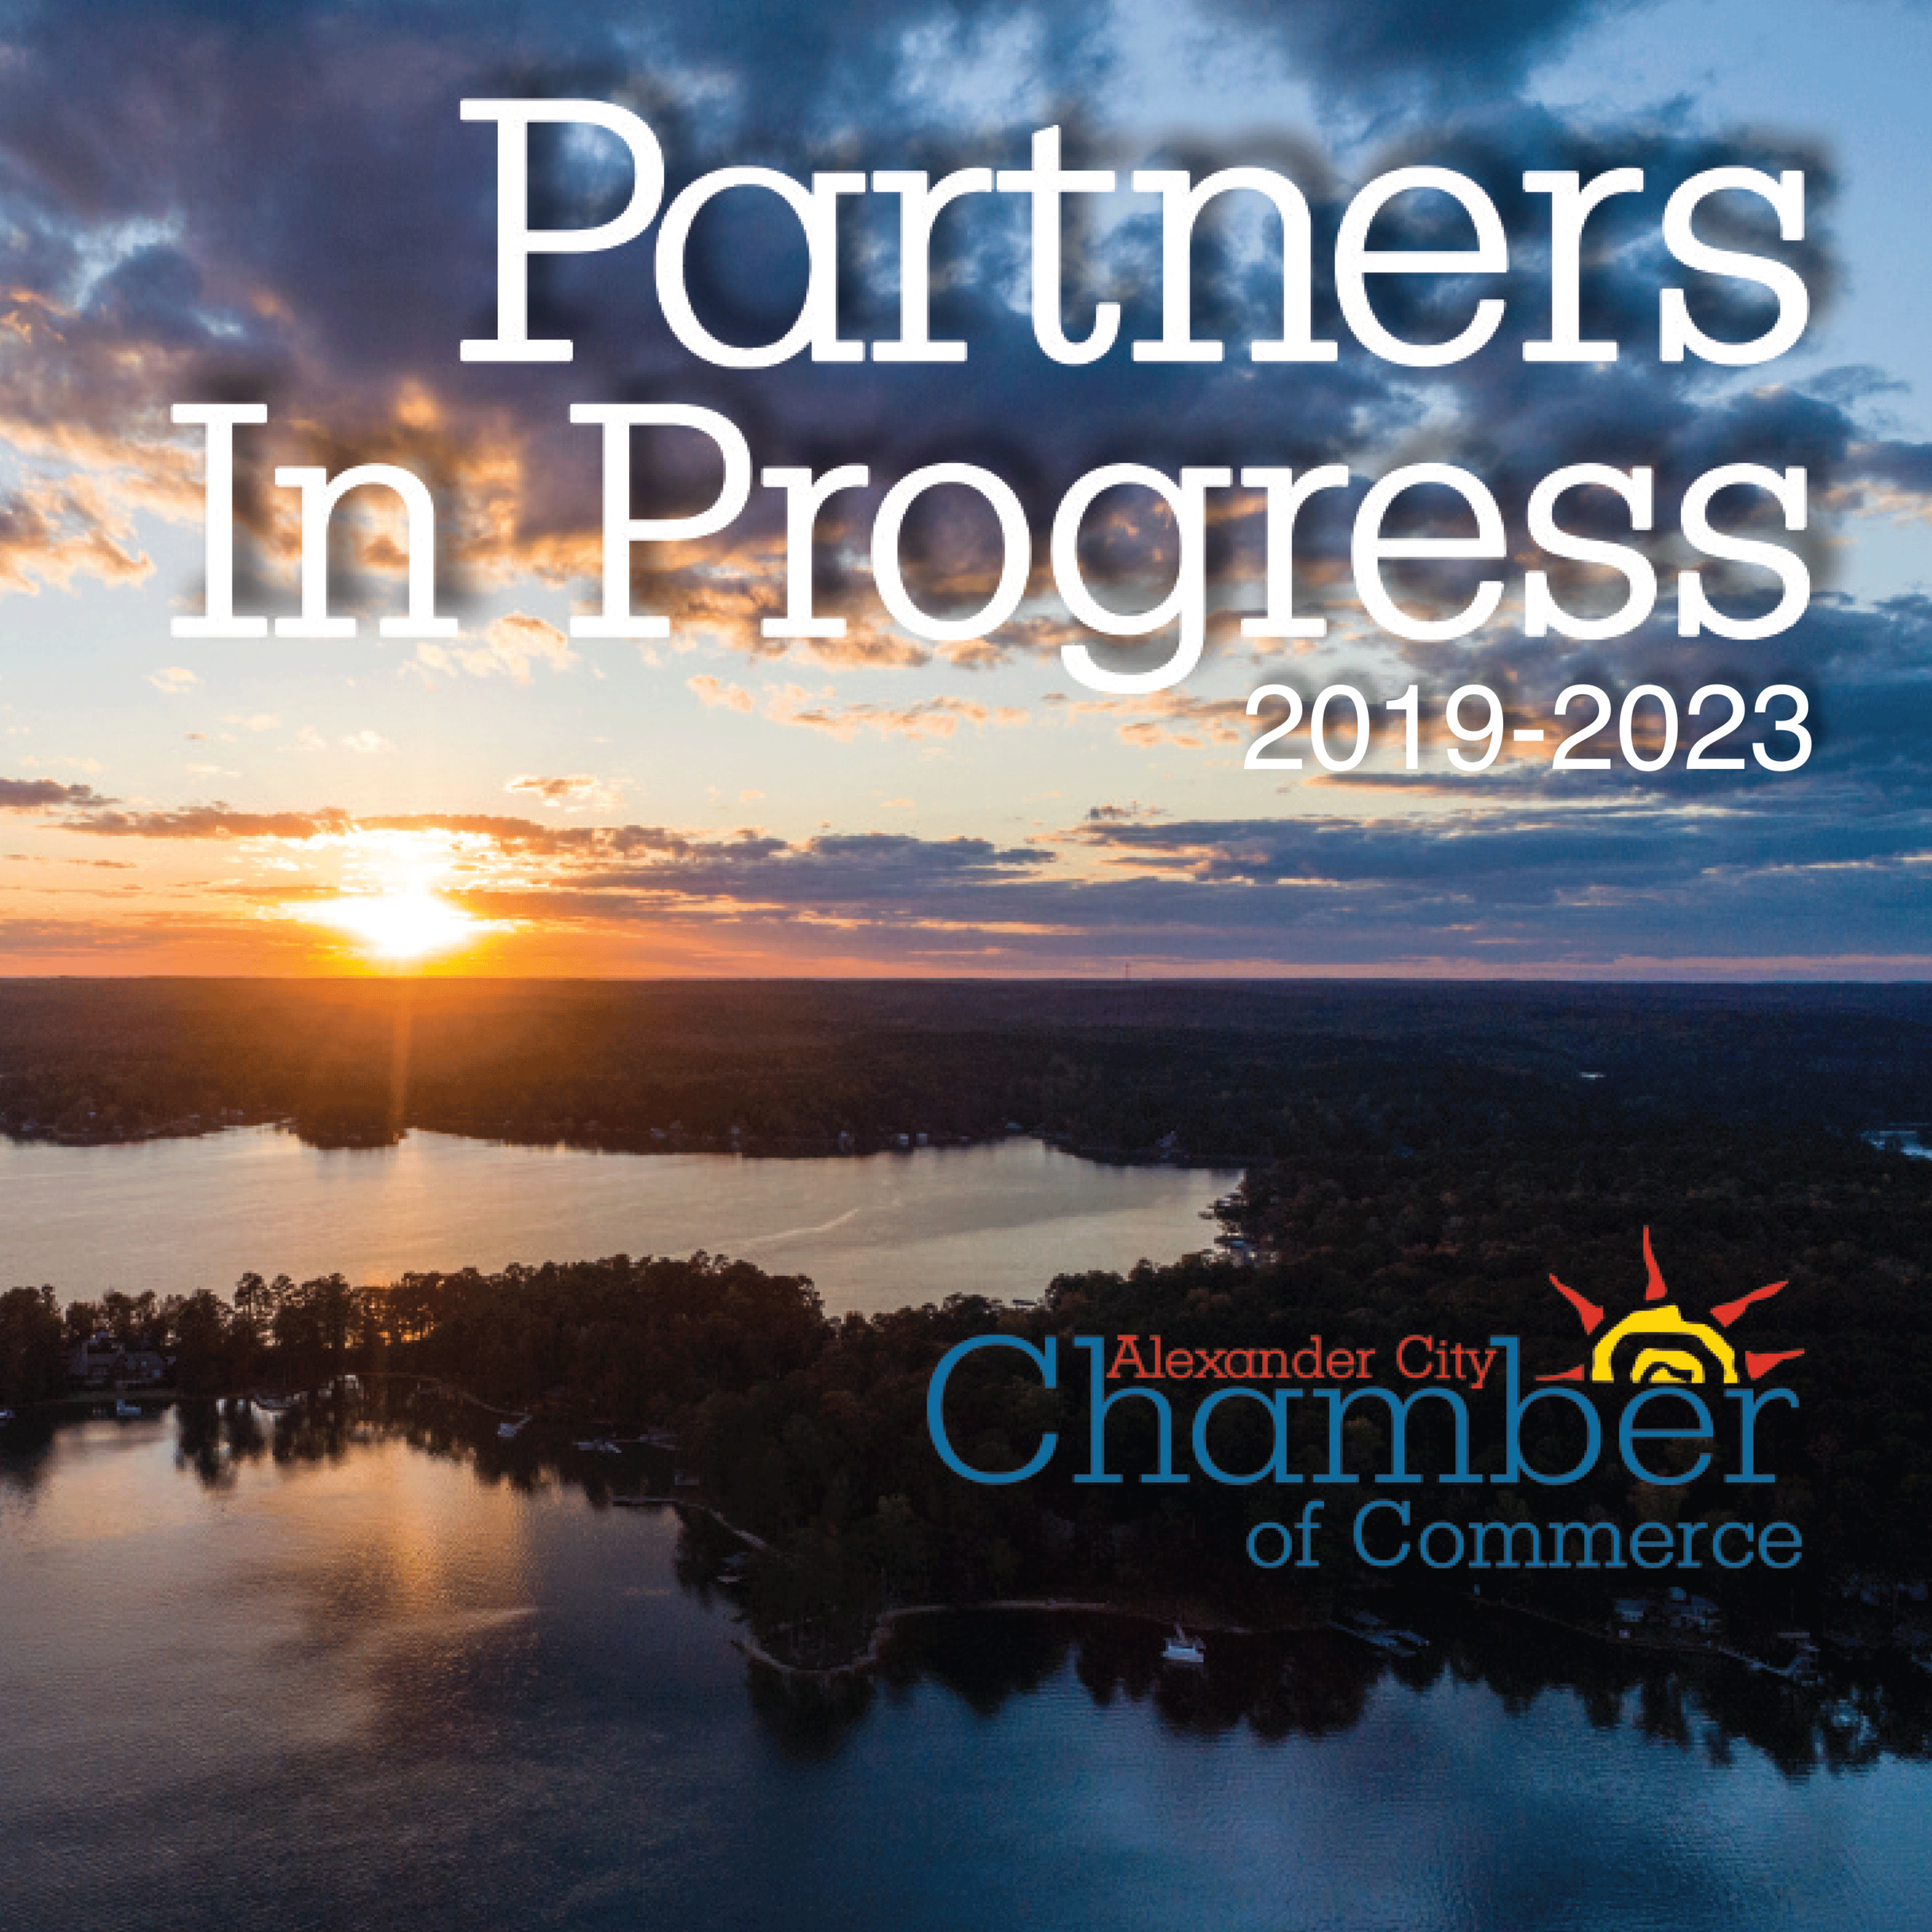 Partners In Progress - The Alexander City Chamber of Commerce's 2019-2023 five-year strategic plan